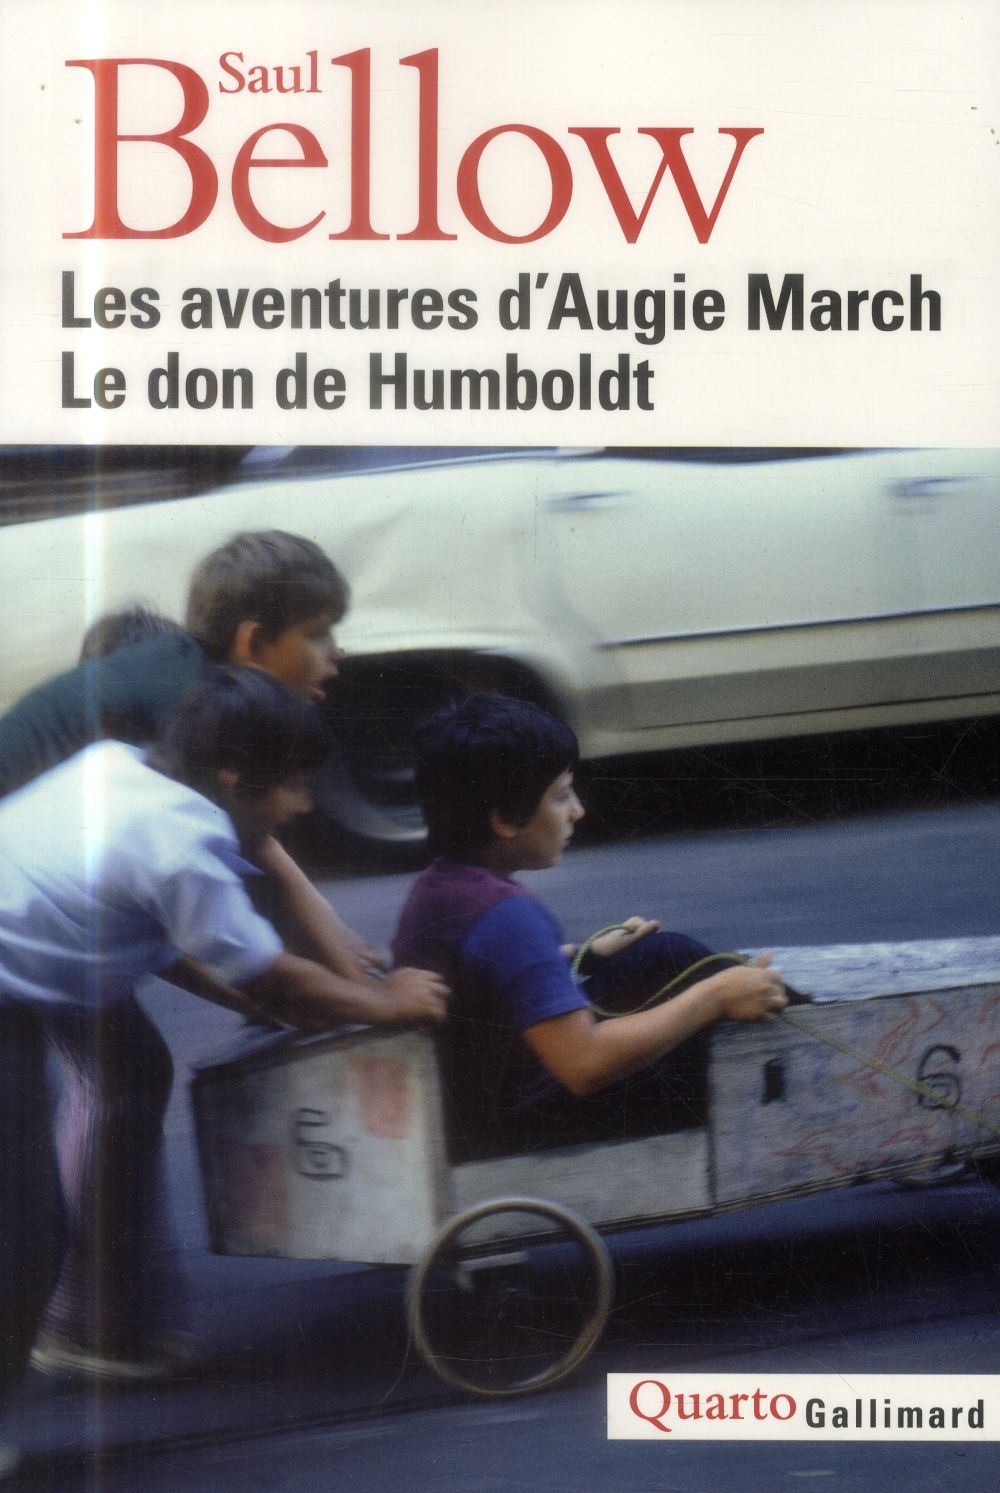 Les aventures d'augie march ; le don de humboldt